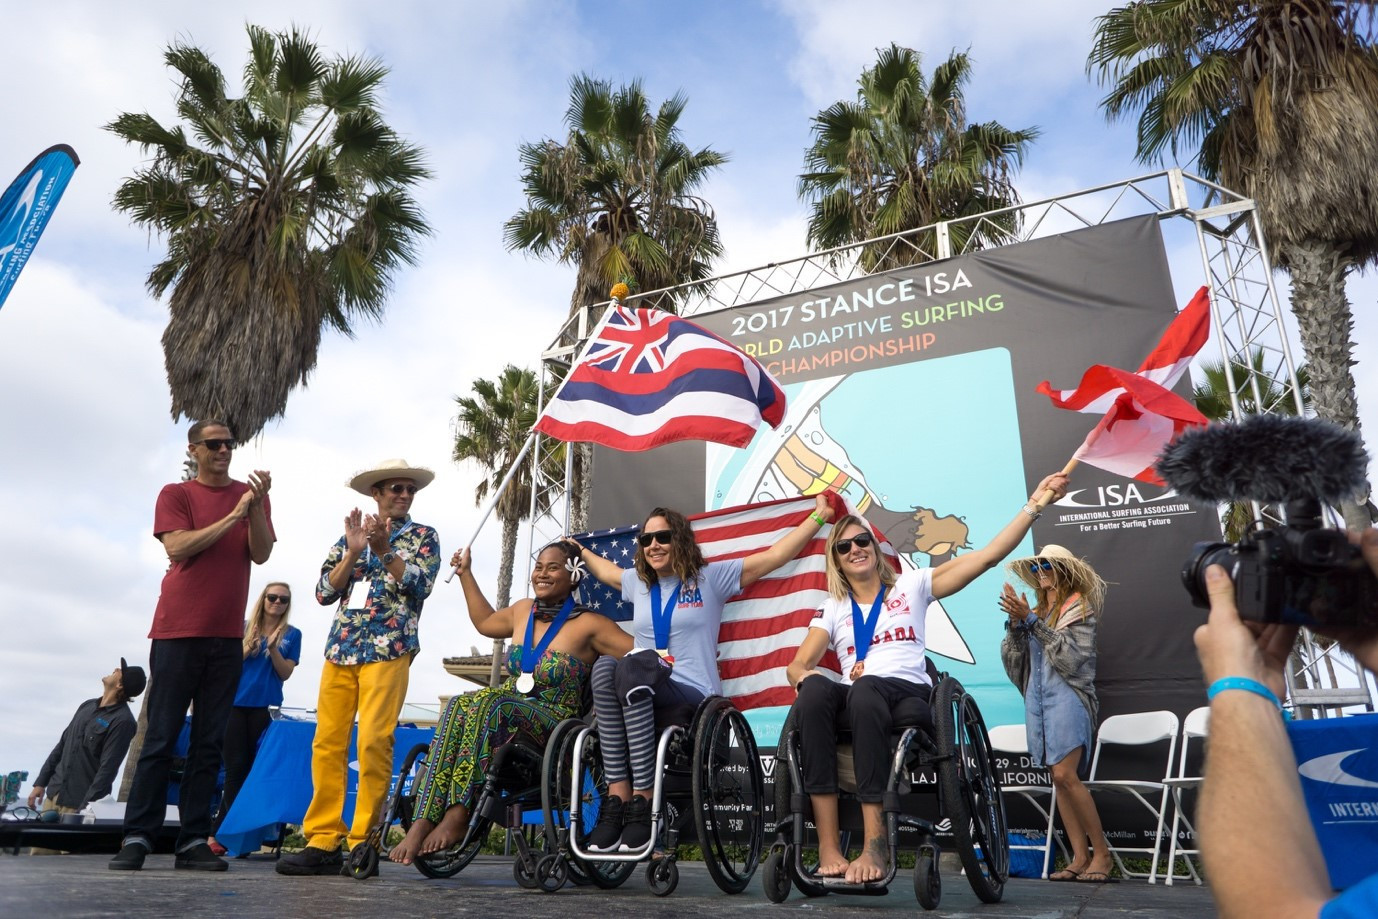 La Jolla in California to host ISA World Adaptive Surfing Championship